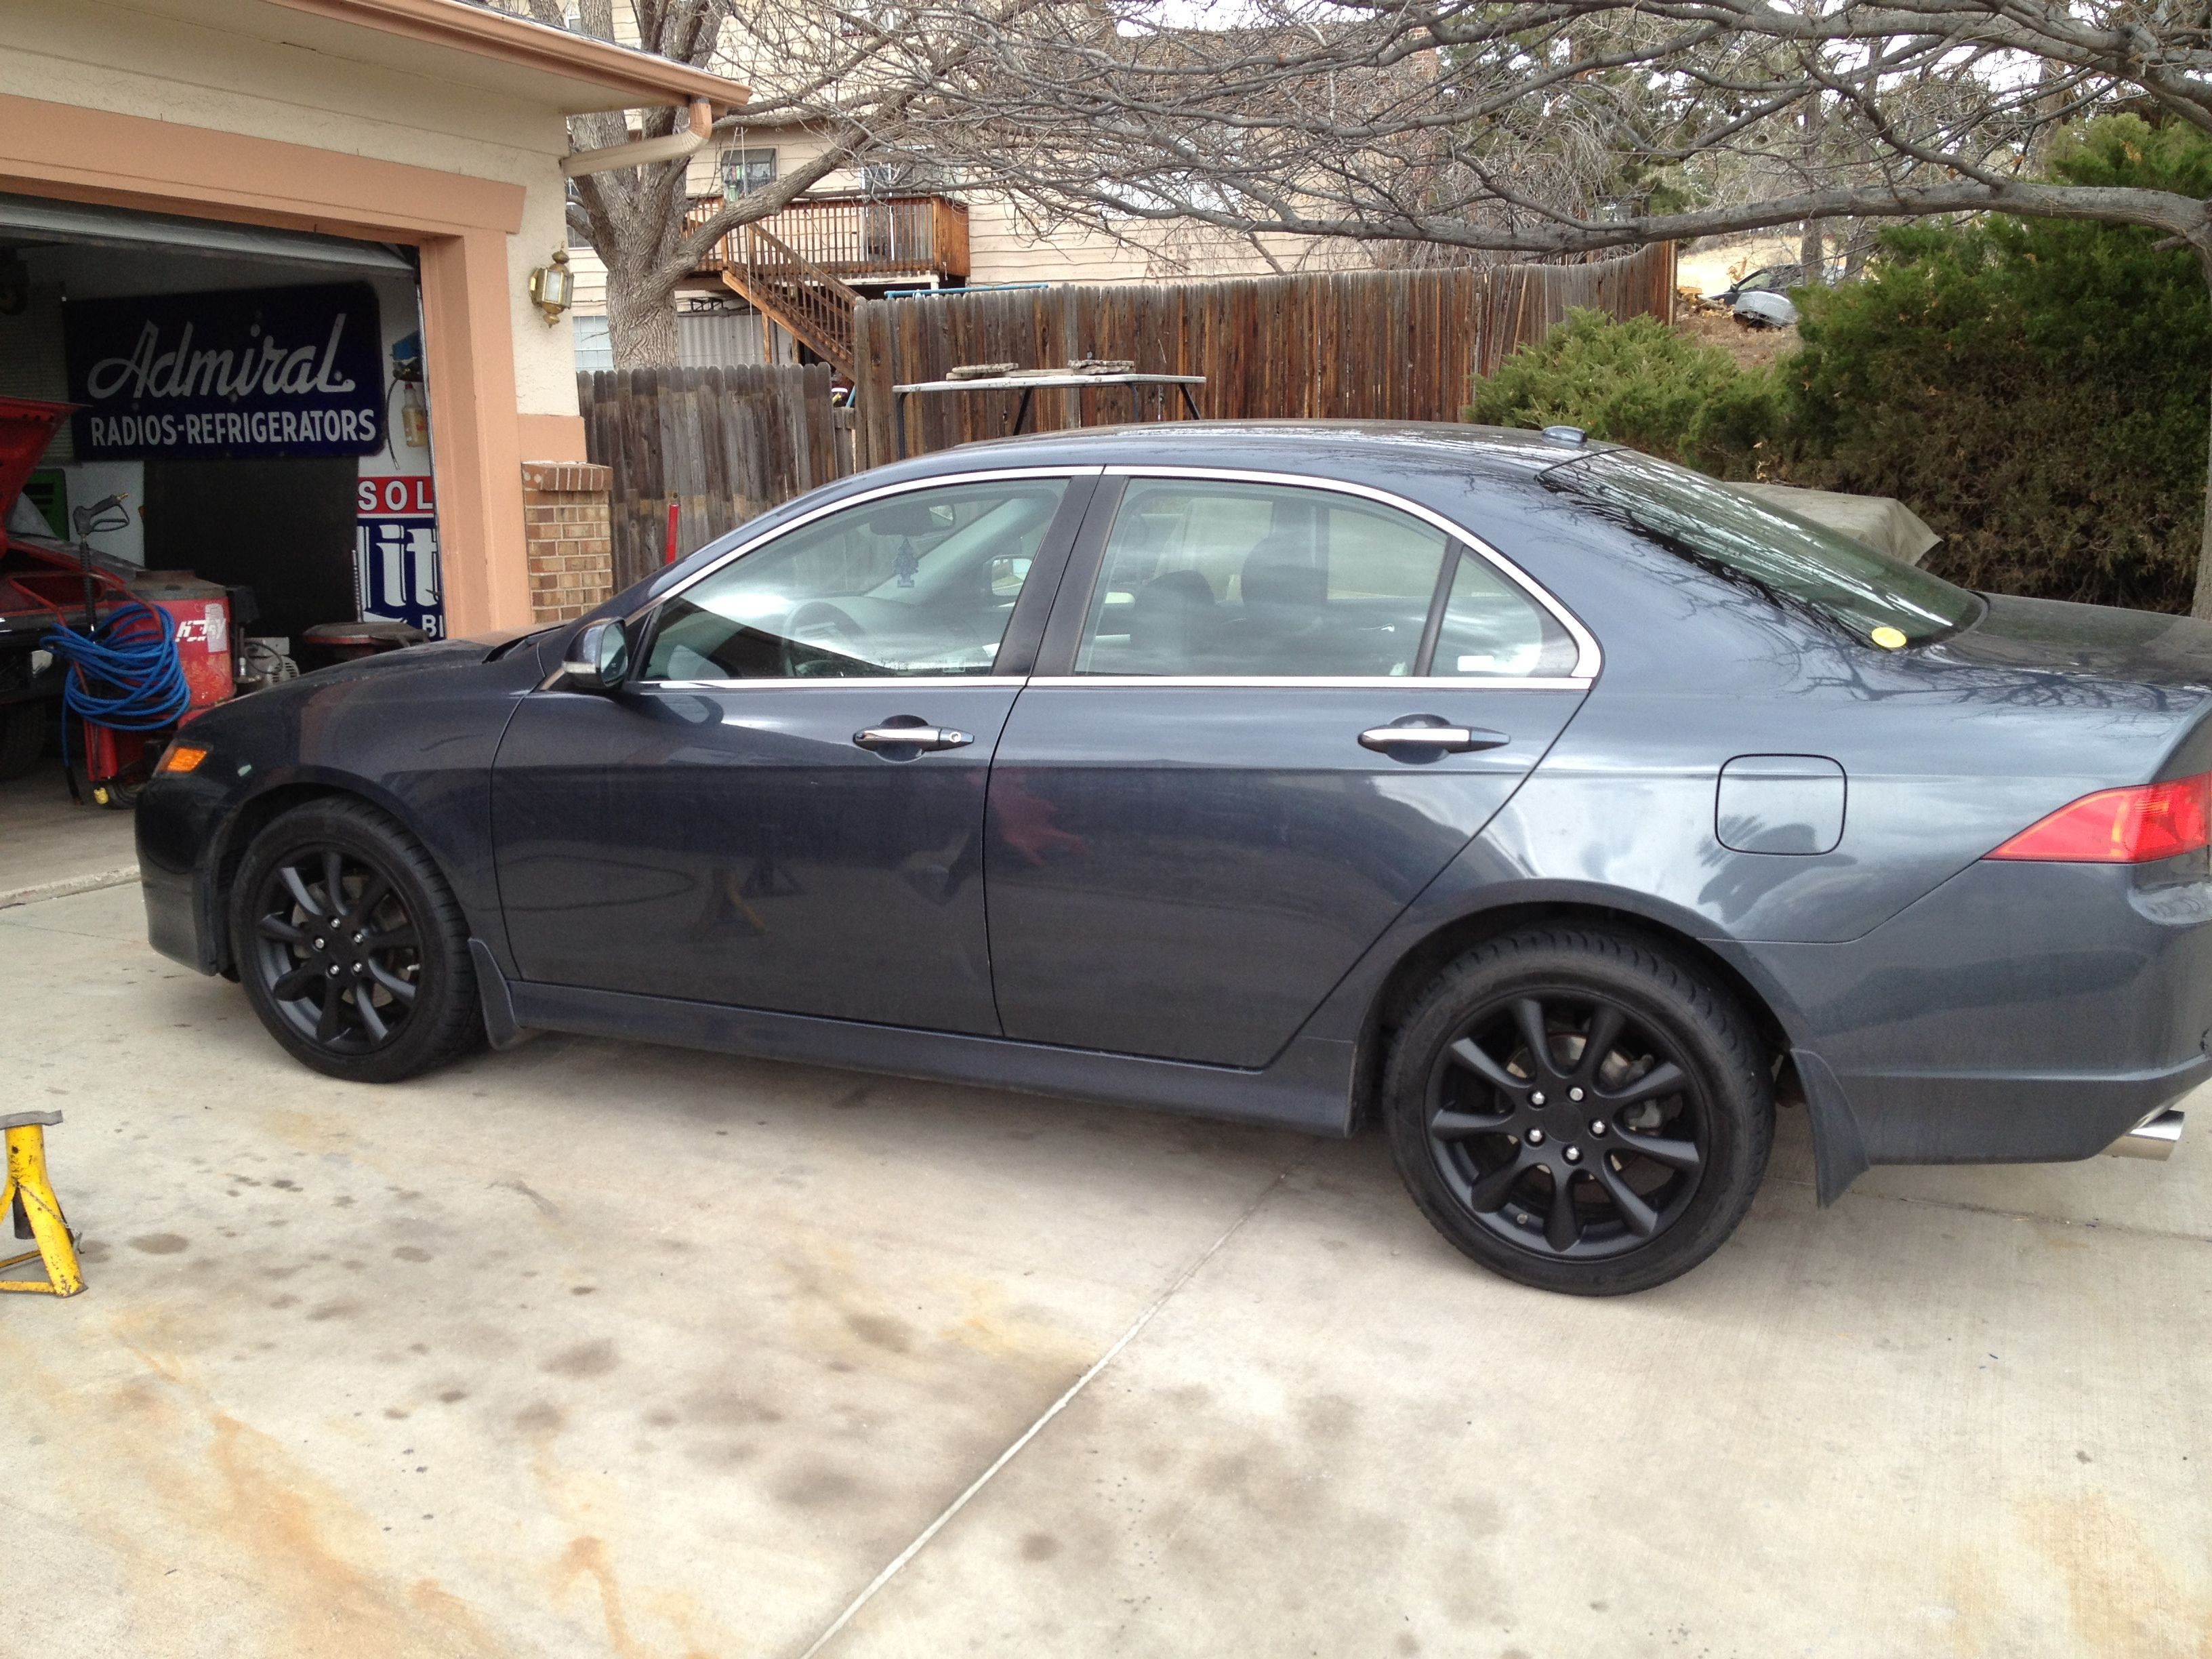 Blacked Out The Rims Acura TSX Gen Pinterest Acura Tsx - Rims for acura tsx